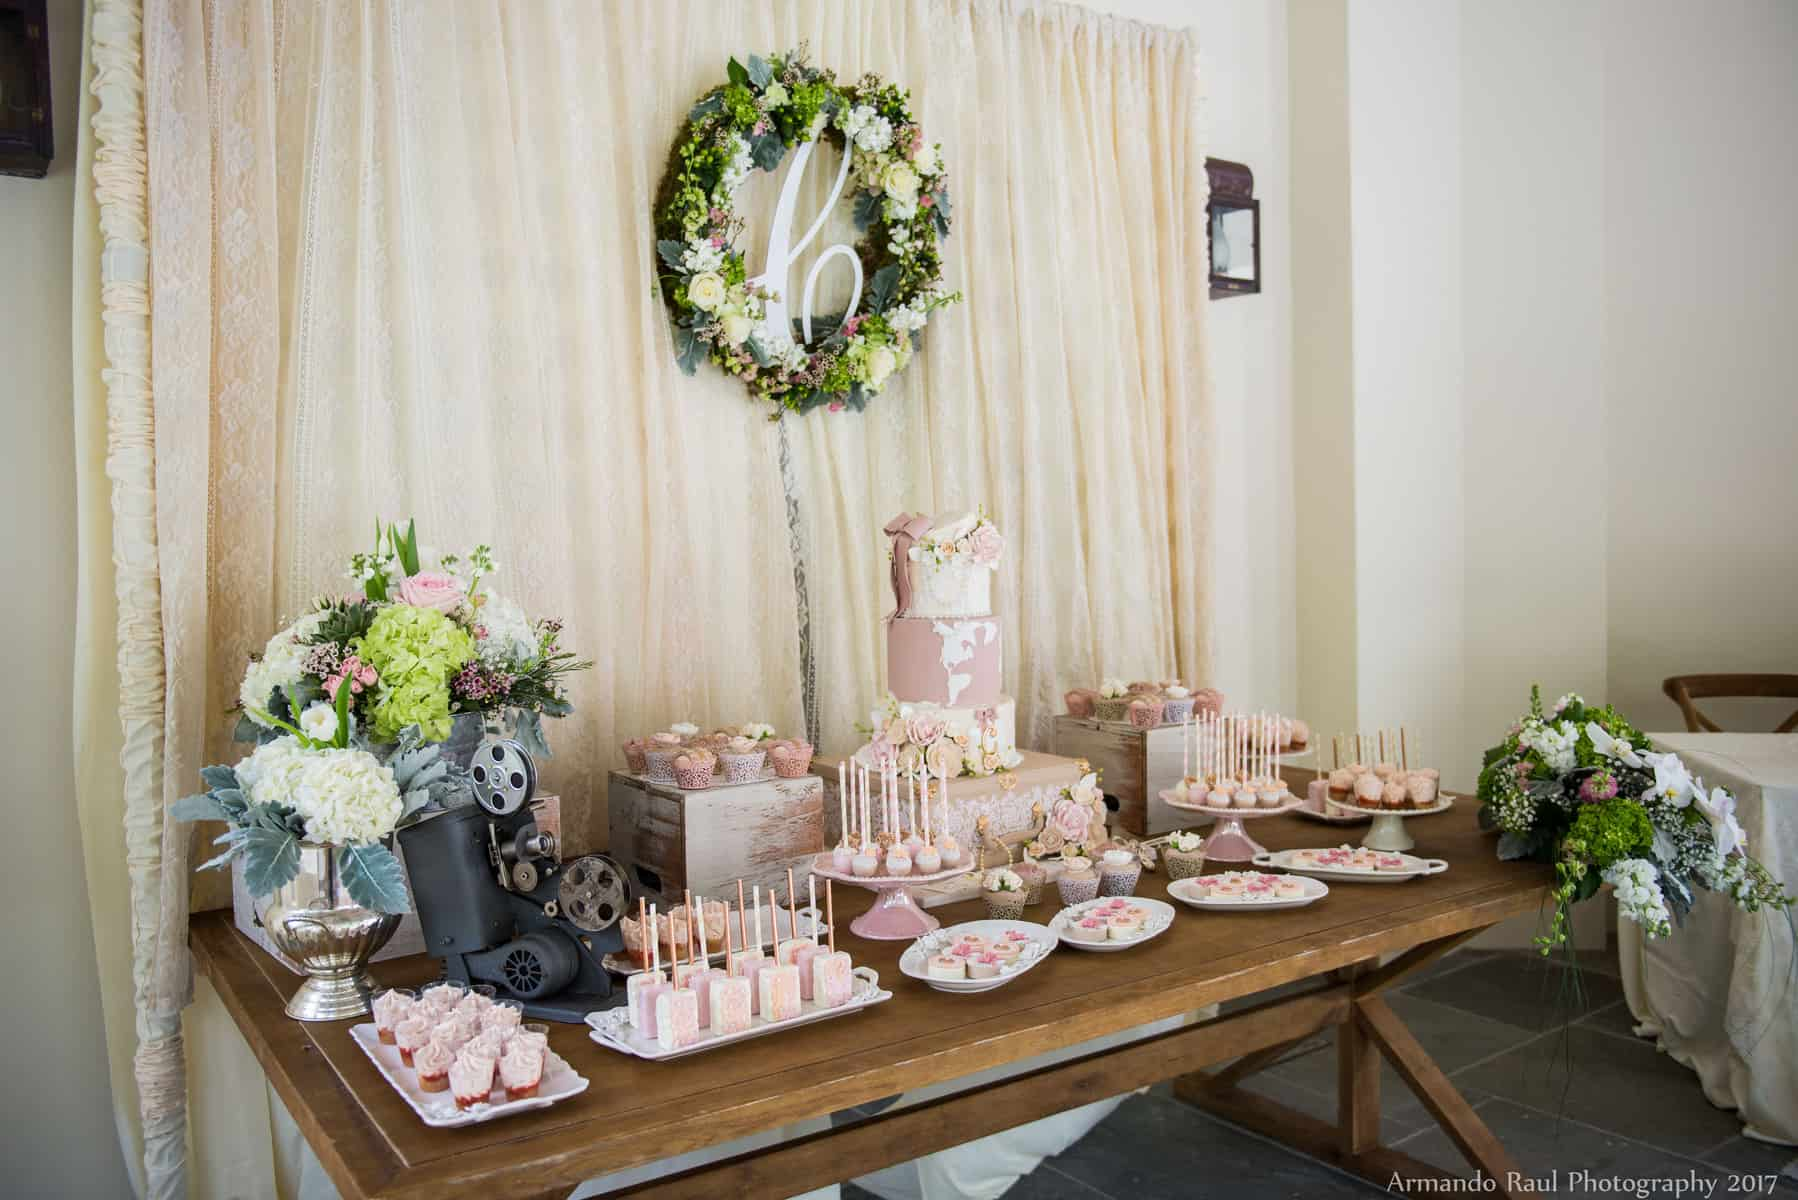 Vintage Travel Theme Baby Shower Dessert Table | Baby Girl | You Are My Greatest Adventure | Lace, World Map, Flowers, Cameras, Vintage Decor | Cake, Sweets, Desserts, Lounge Seating Area, World Cuisine, Food Stations, Seating Arrangement | Home Baby Shower | Blush Pink, Beige, Gold, Champagne, White